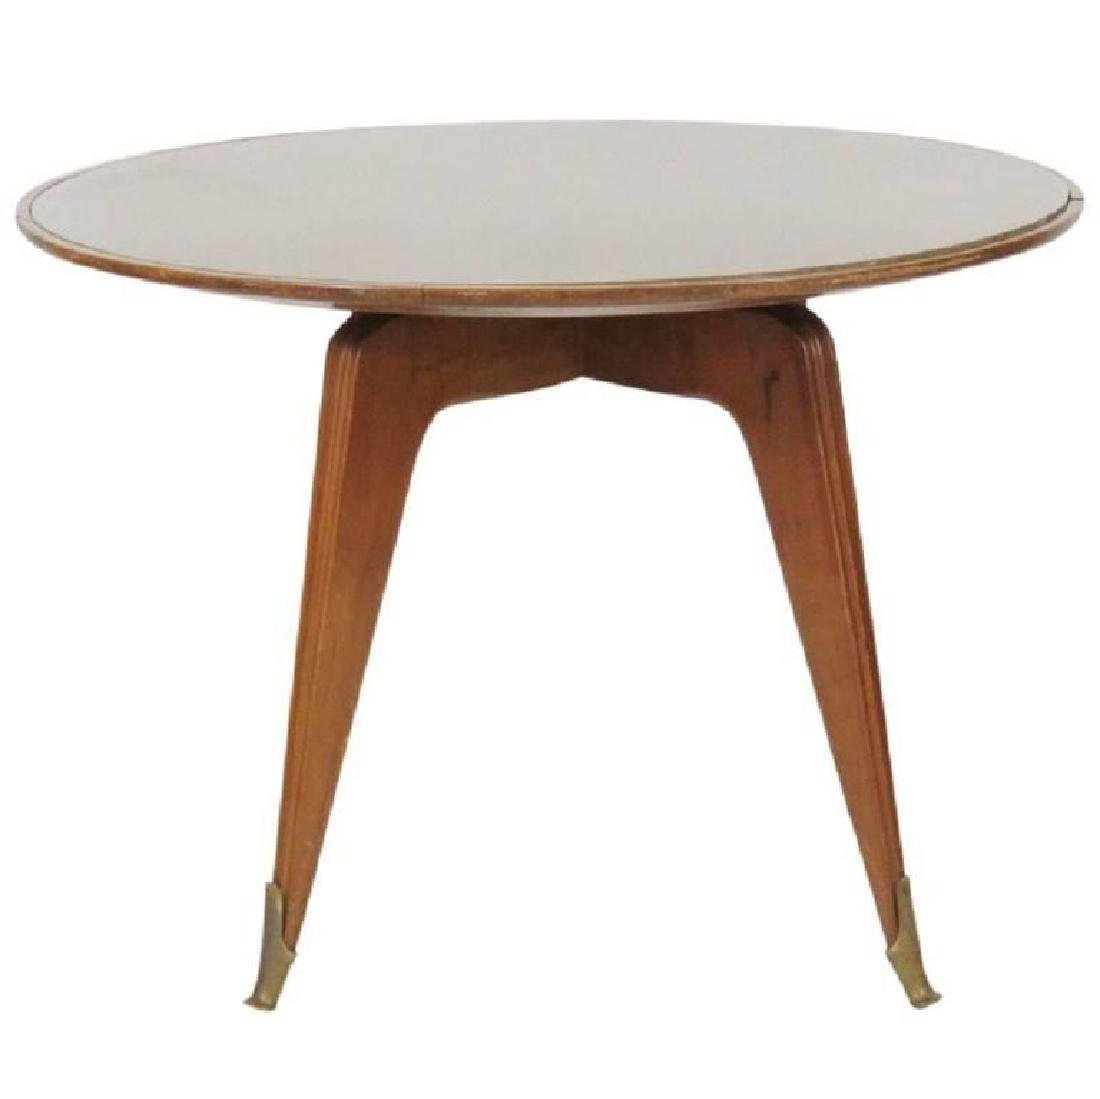 BUFFA STYLE ROSEWOOD GLASS TOP DINING TABLE